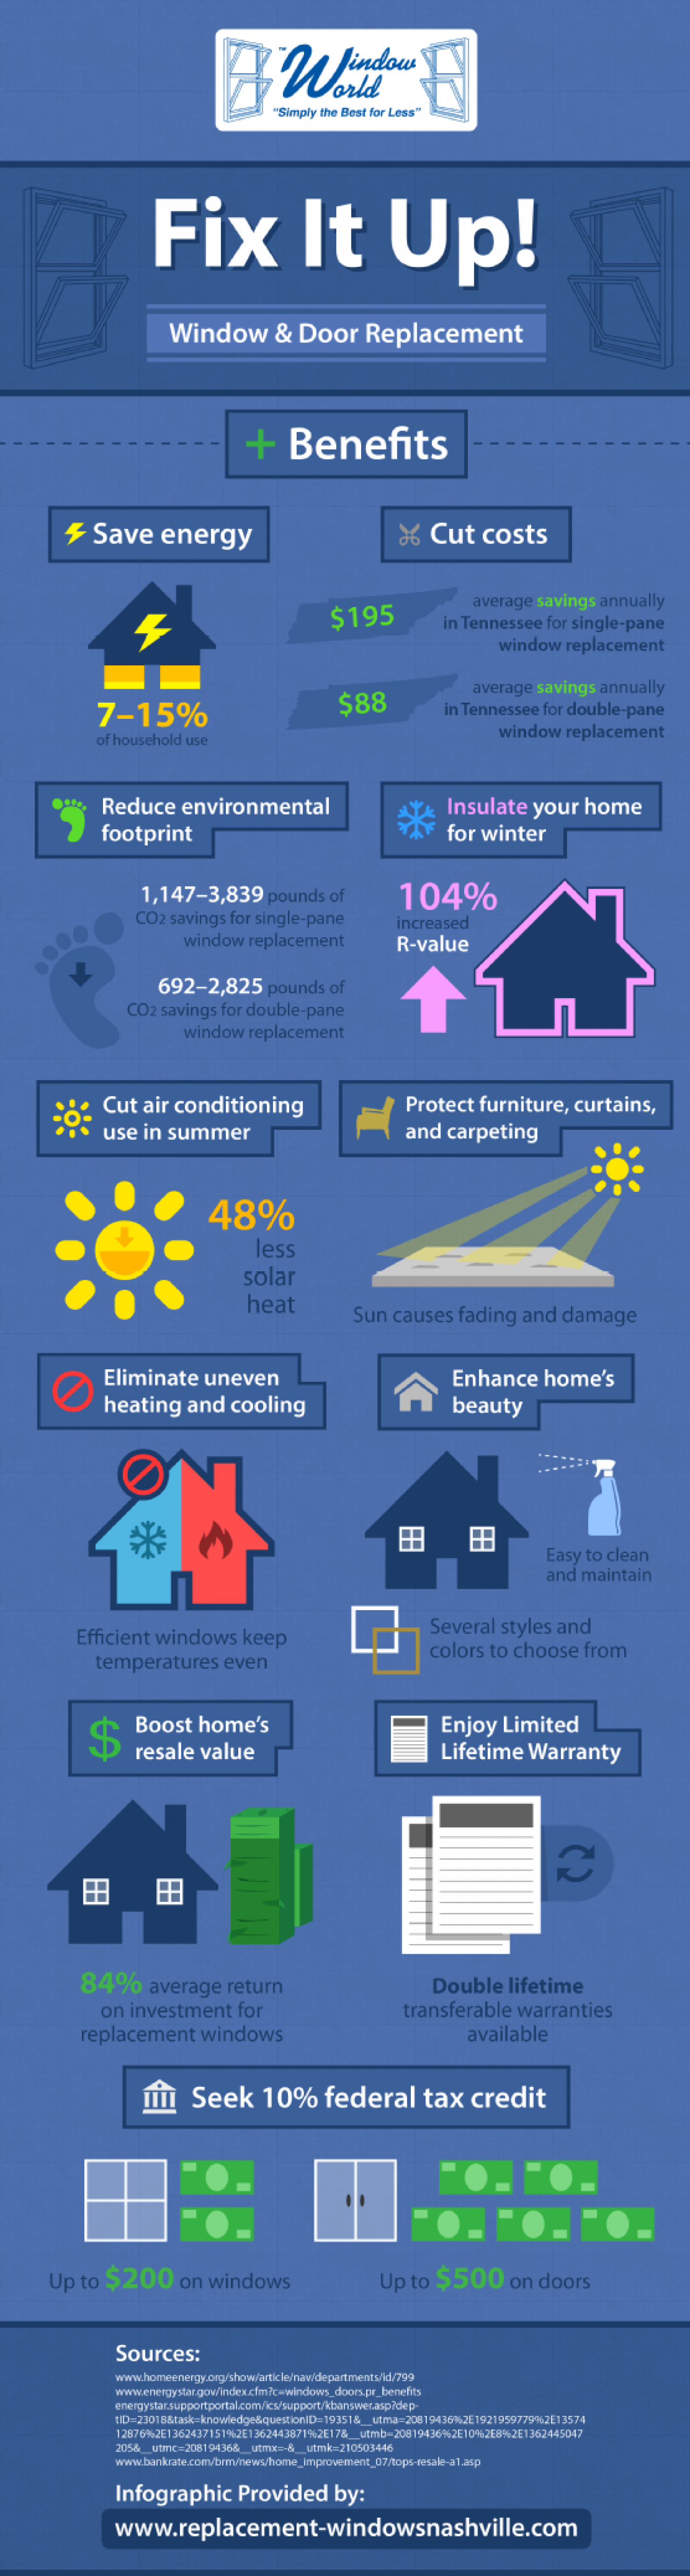 Fix It Up! Window & Door Replacement Infographic